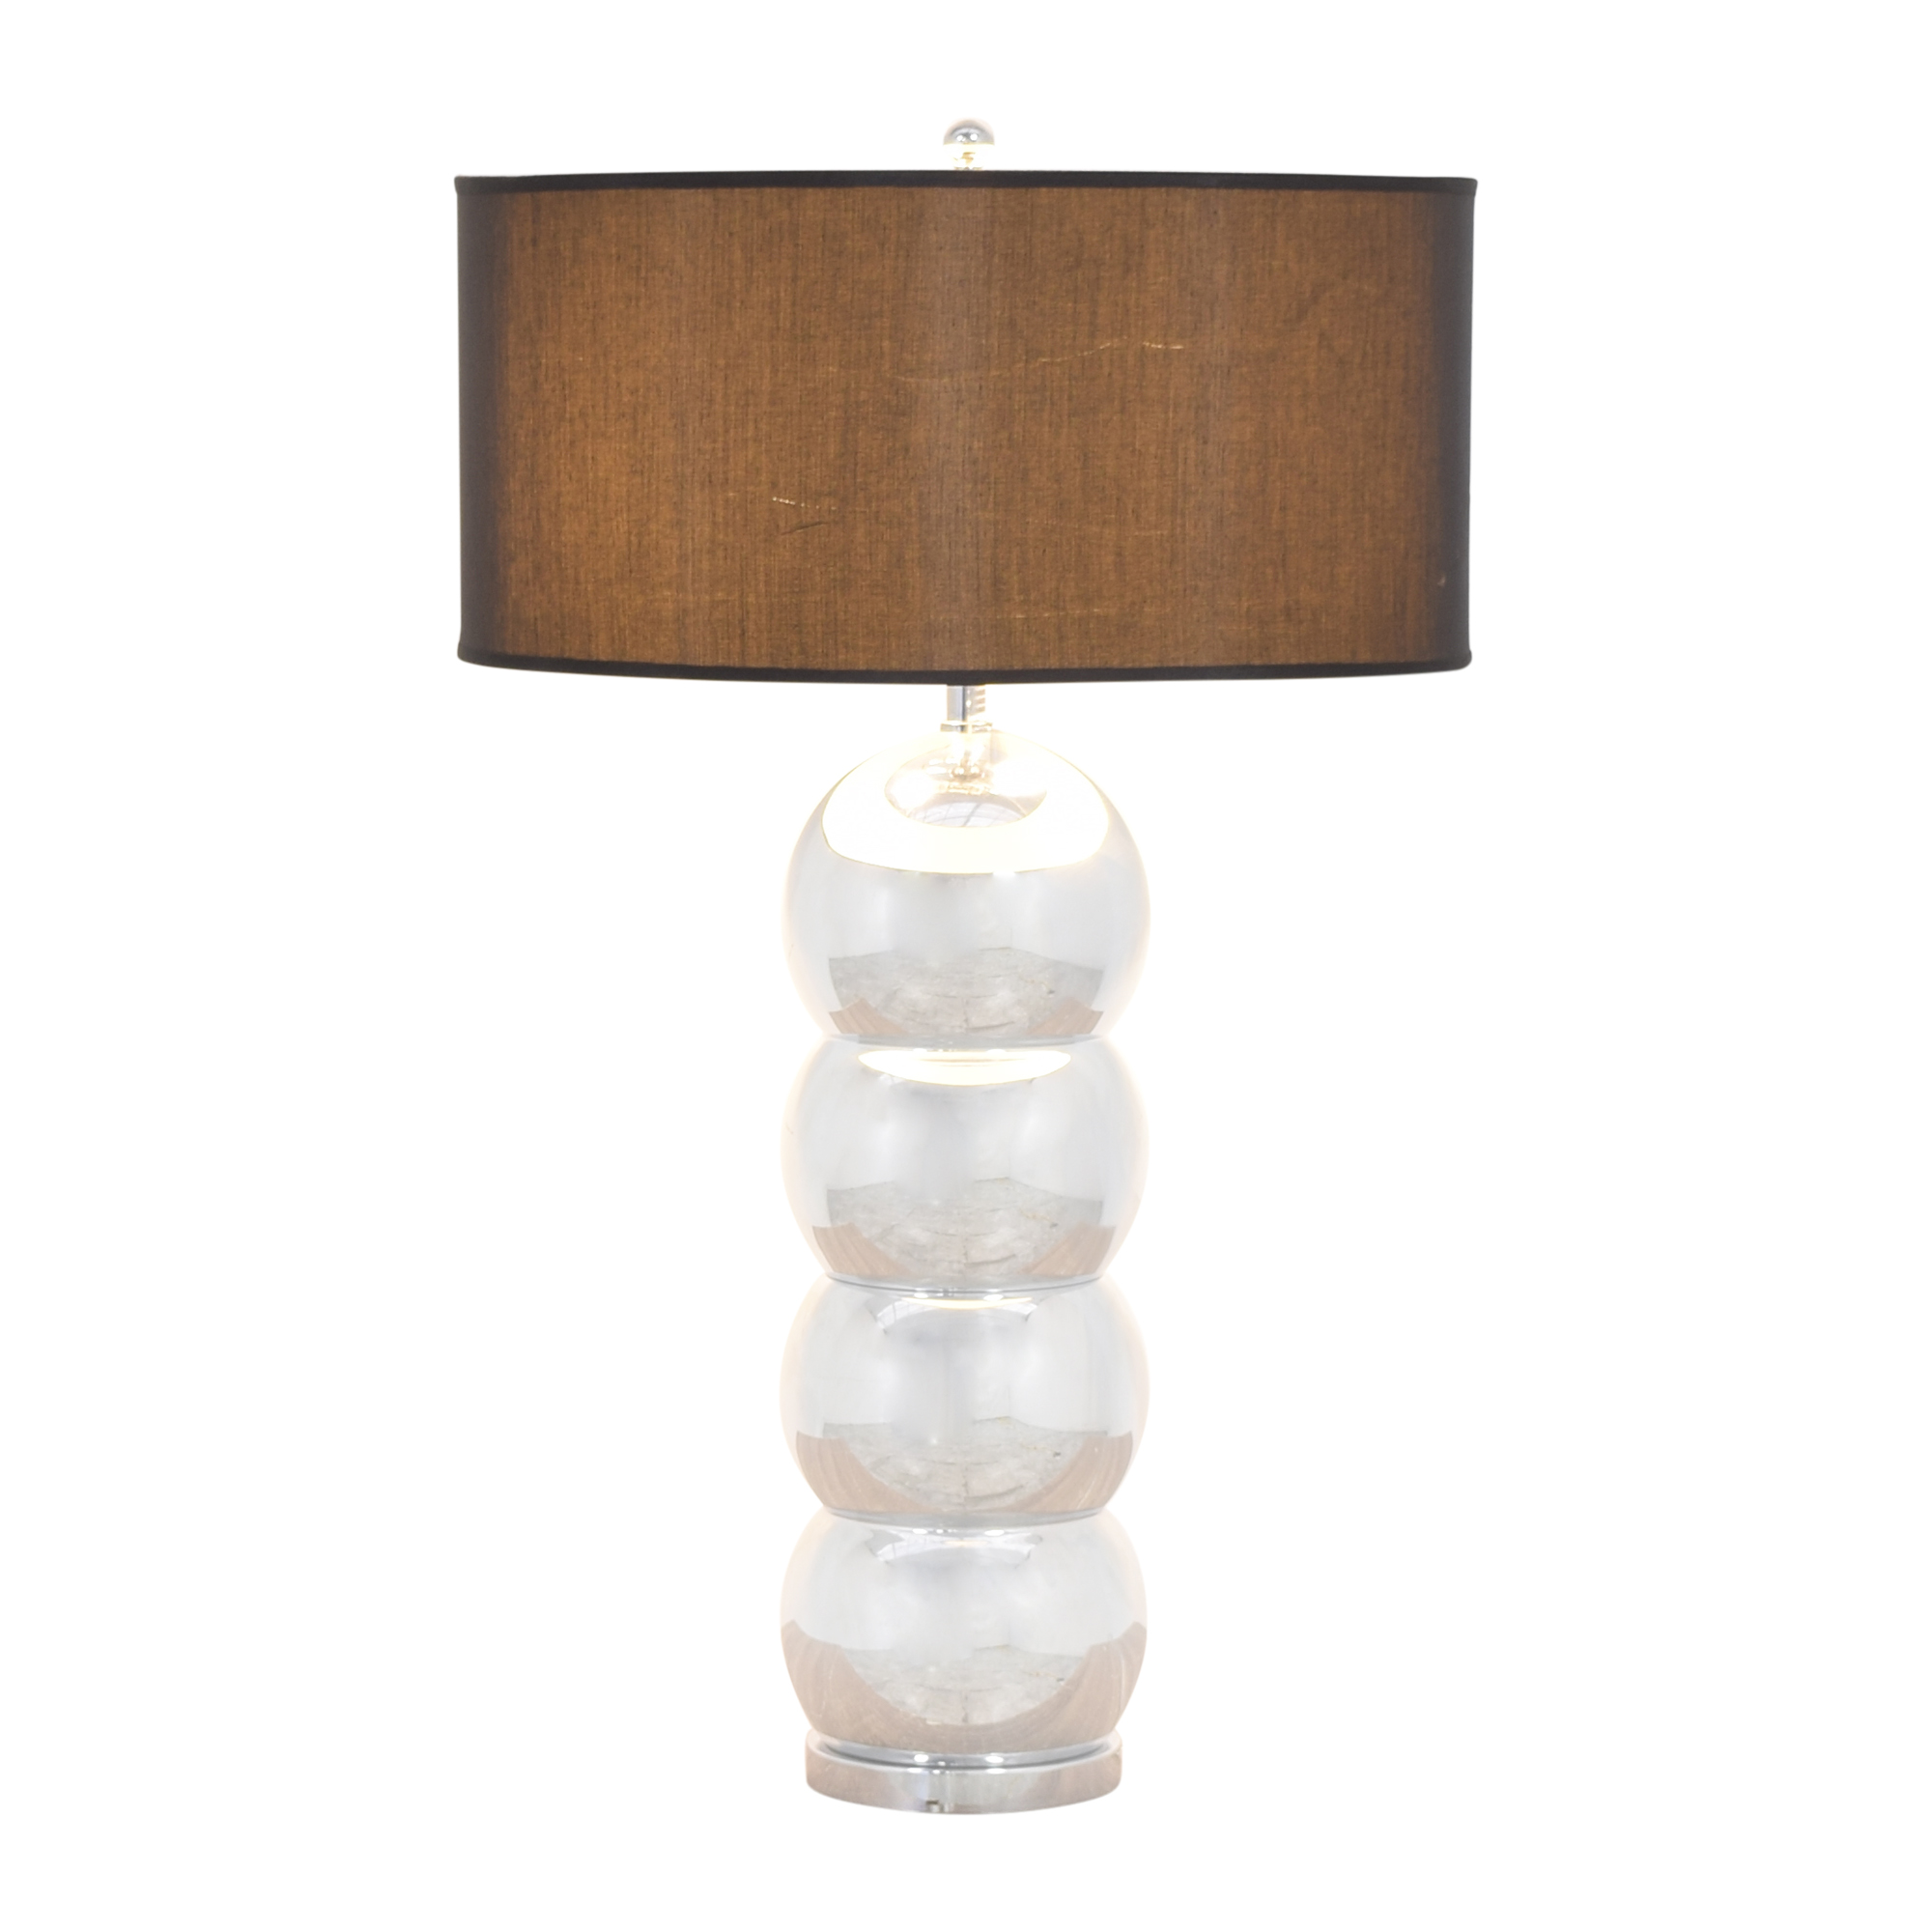 George Kovacs George Kovacs Stacked Ball Table Lamp coupon